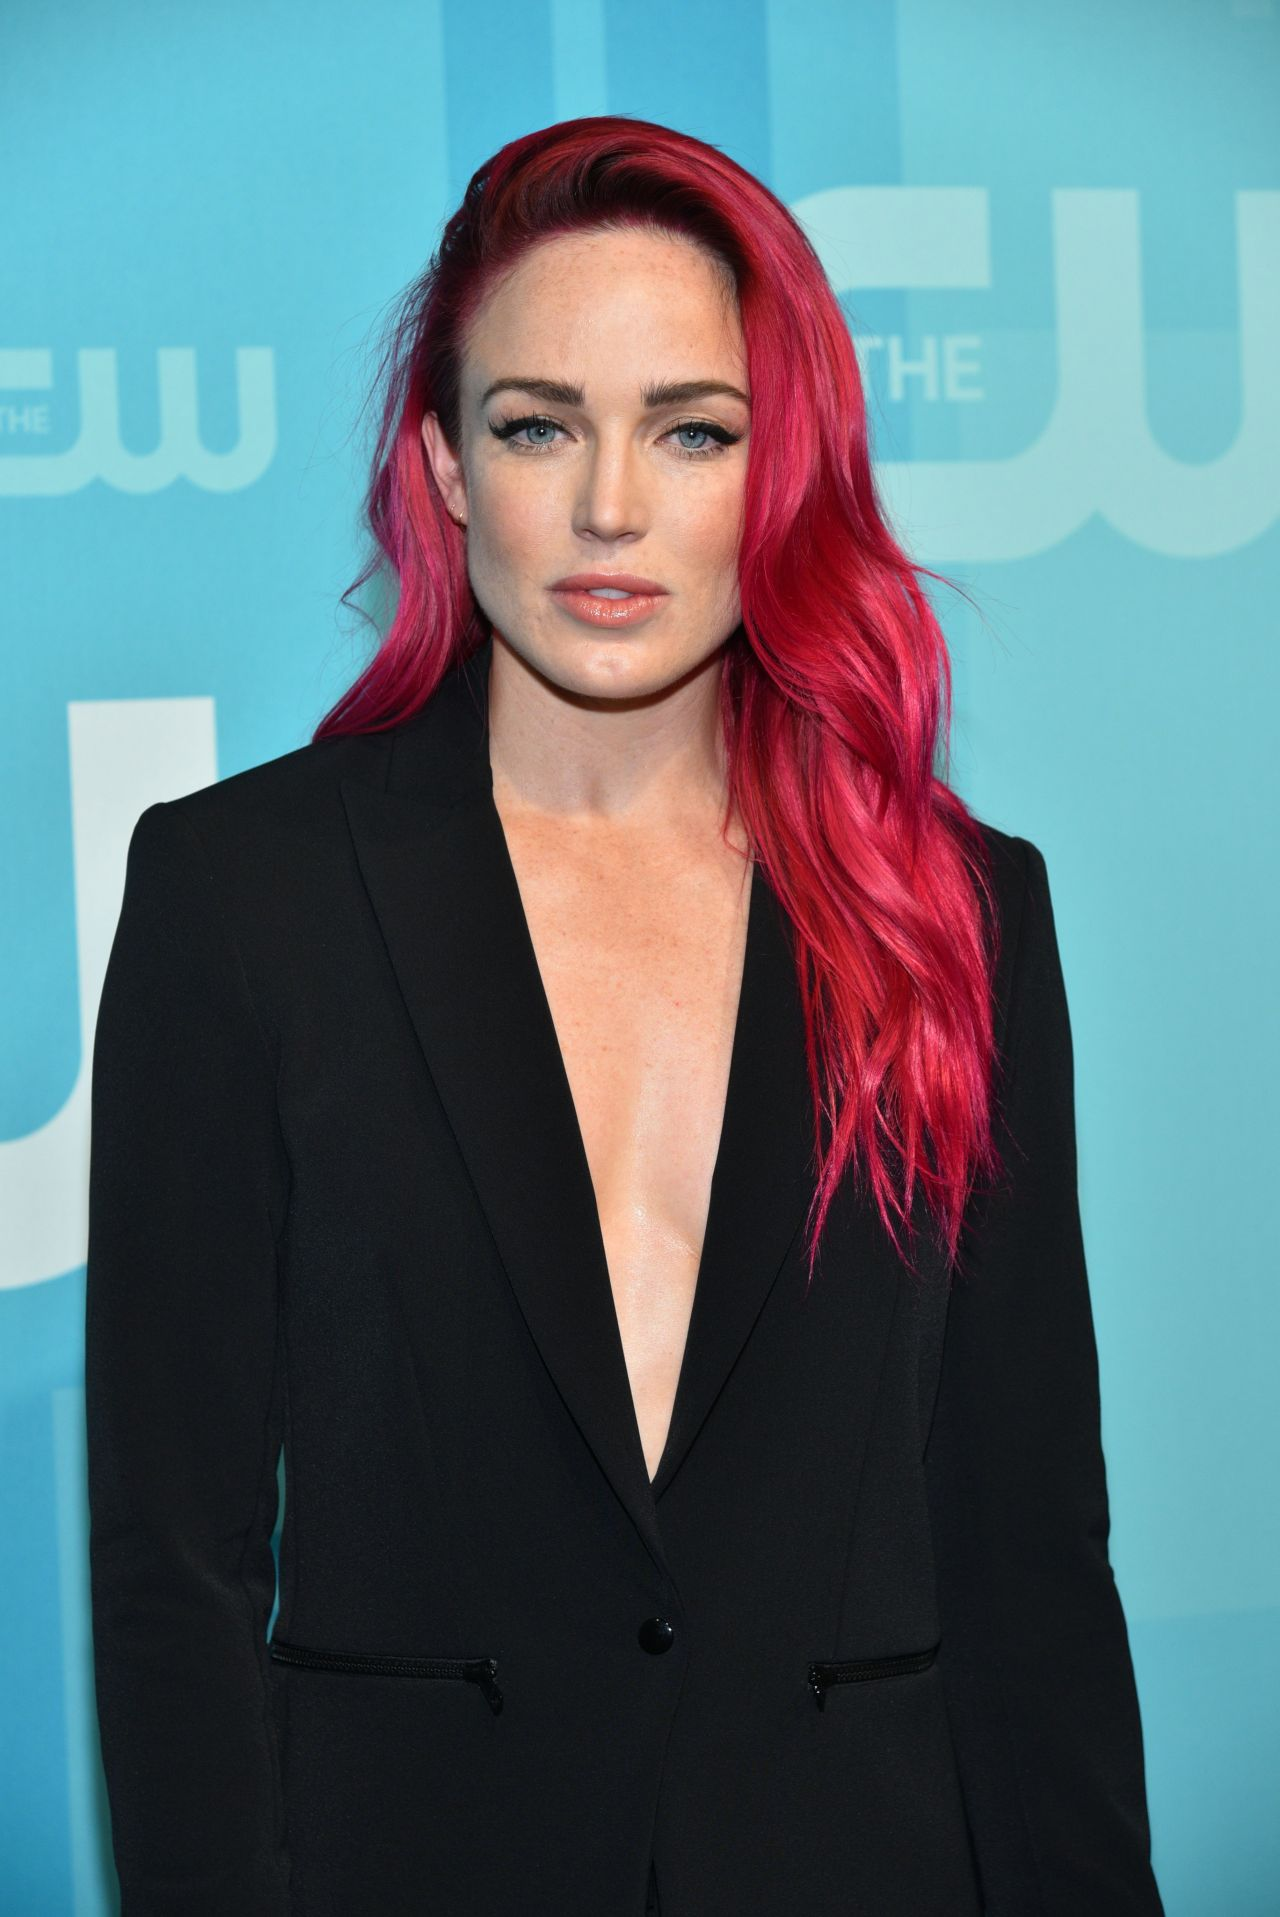 Legends Of The Fall Wallpaper Caity Lotz The Cw Network S Upfront In New York City 05